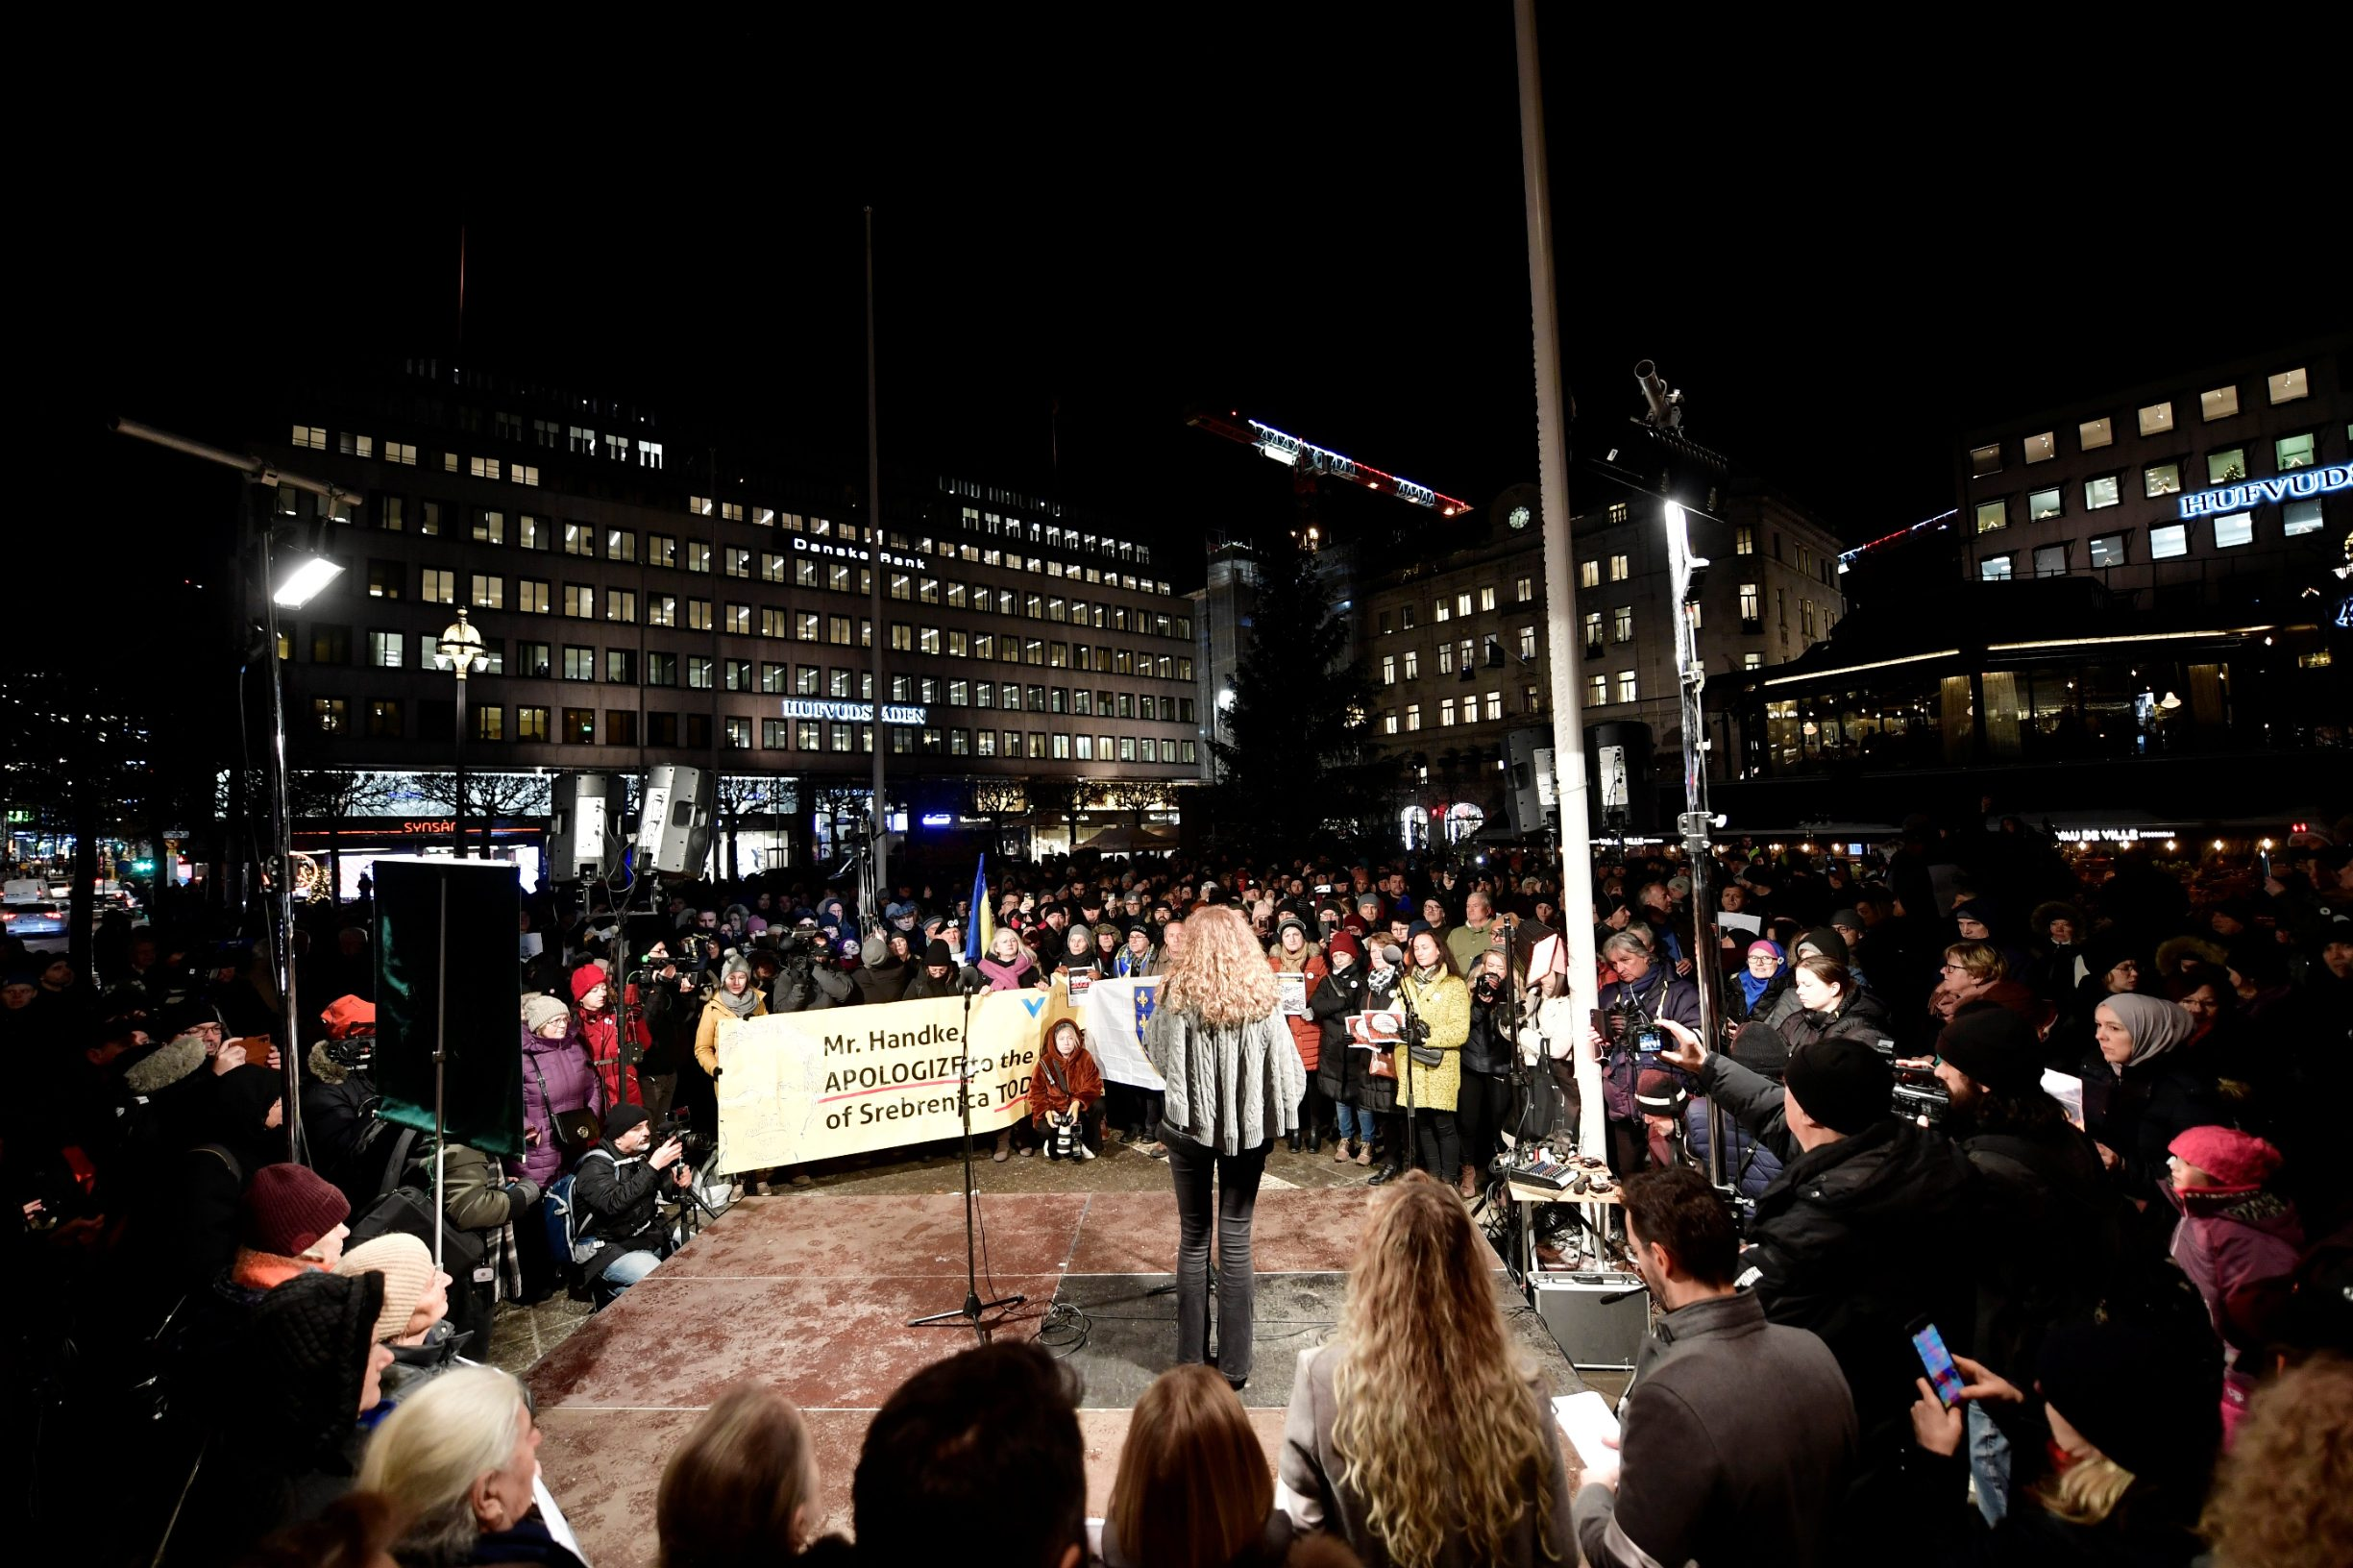 People gather for a demonstration against the awarding of the 2019 Nobel literature prize to Peter Handke in Stockholm, Sweden December 10, 2019. TT News Agency/Stina Stjernkvist via REUTERS    THIS IMAGE HAS BEEN SUPPLIED BY A THIRD PARTY. SWEDEN OUT. NO COMMERCIAL OR EDITORIAL SALES IN SWEDEN